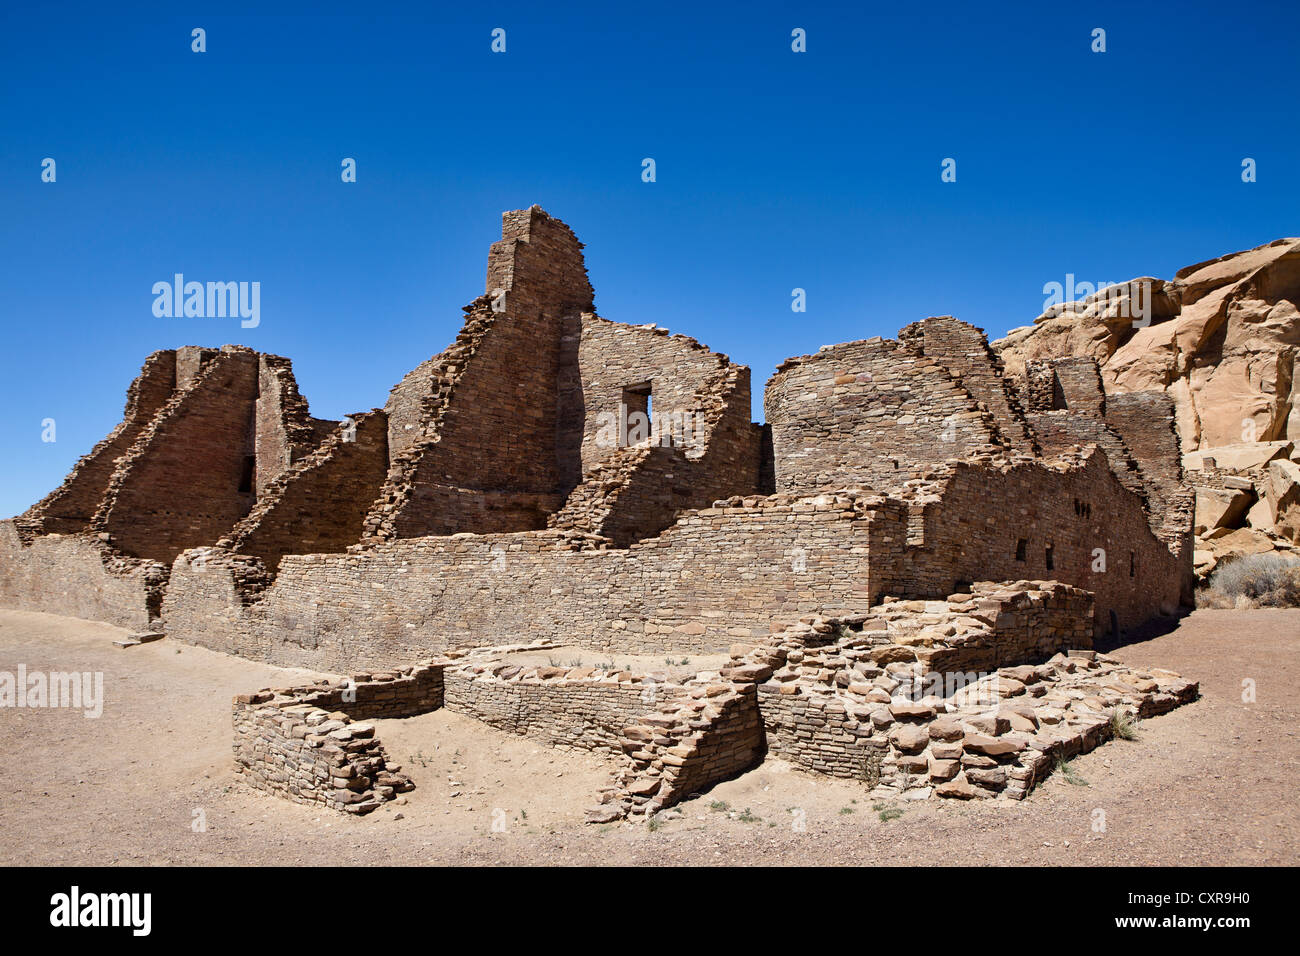 Chaco, National Historical Park, World Heritage Site, New Mexico, USA Stock Photo